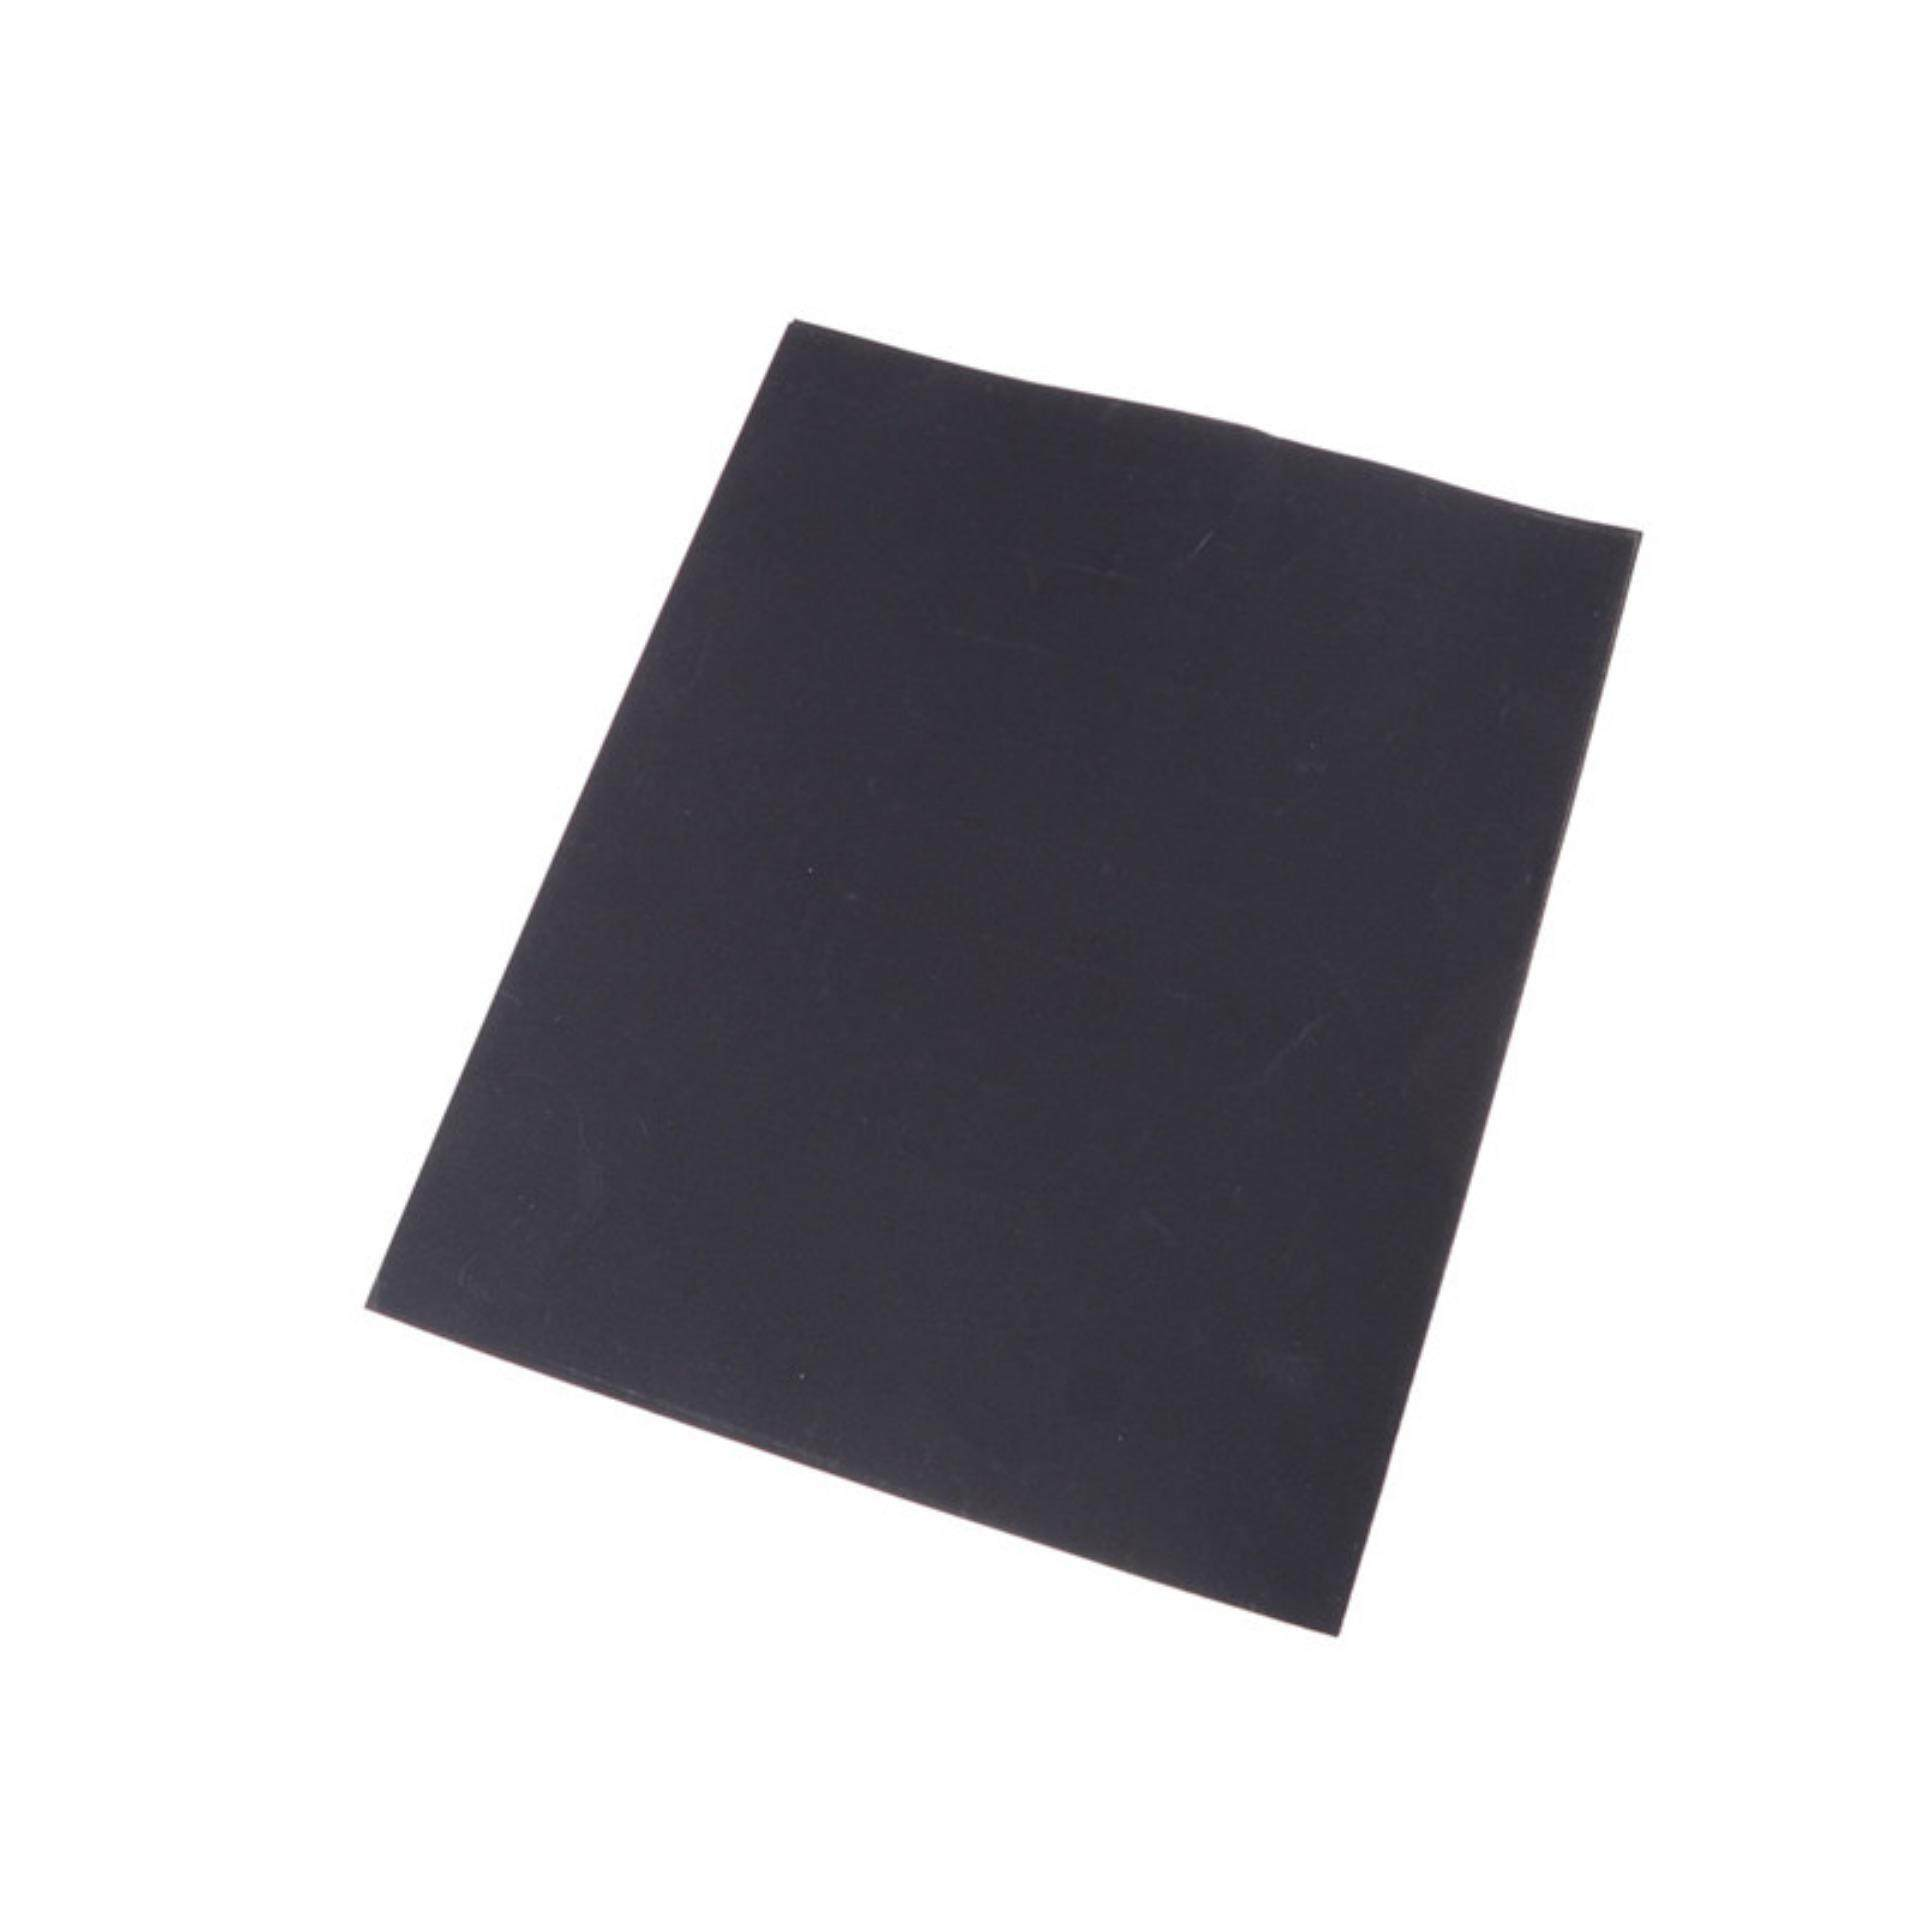 Sky Wing Sheet Surface Finished Abrasive Paper Sandpaper Grind Wet Dry Tool Automotive Sand Wood Furniture  Type:A3